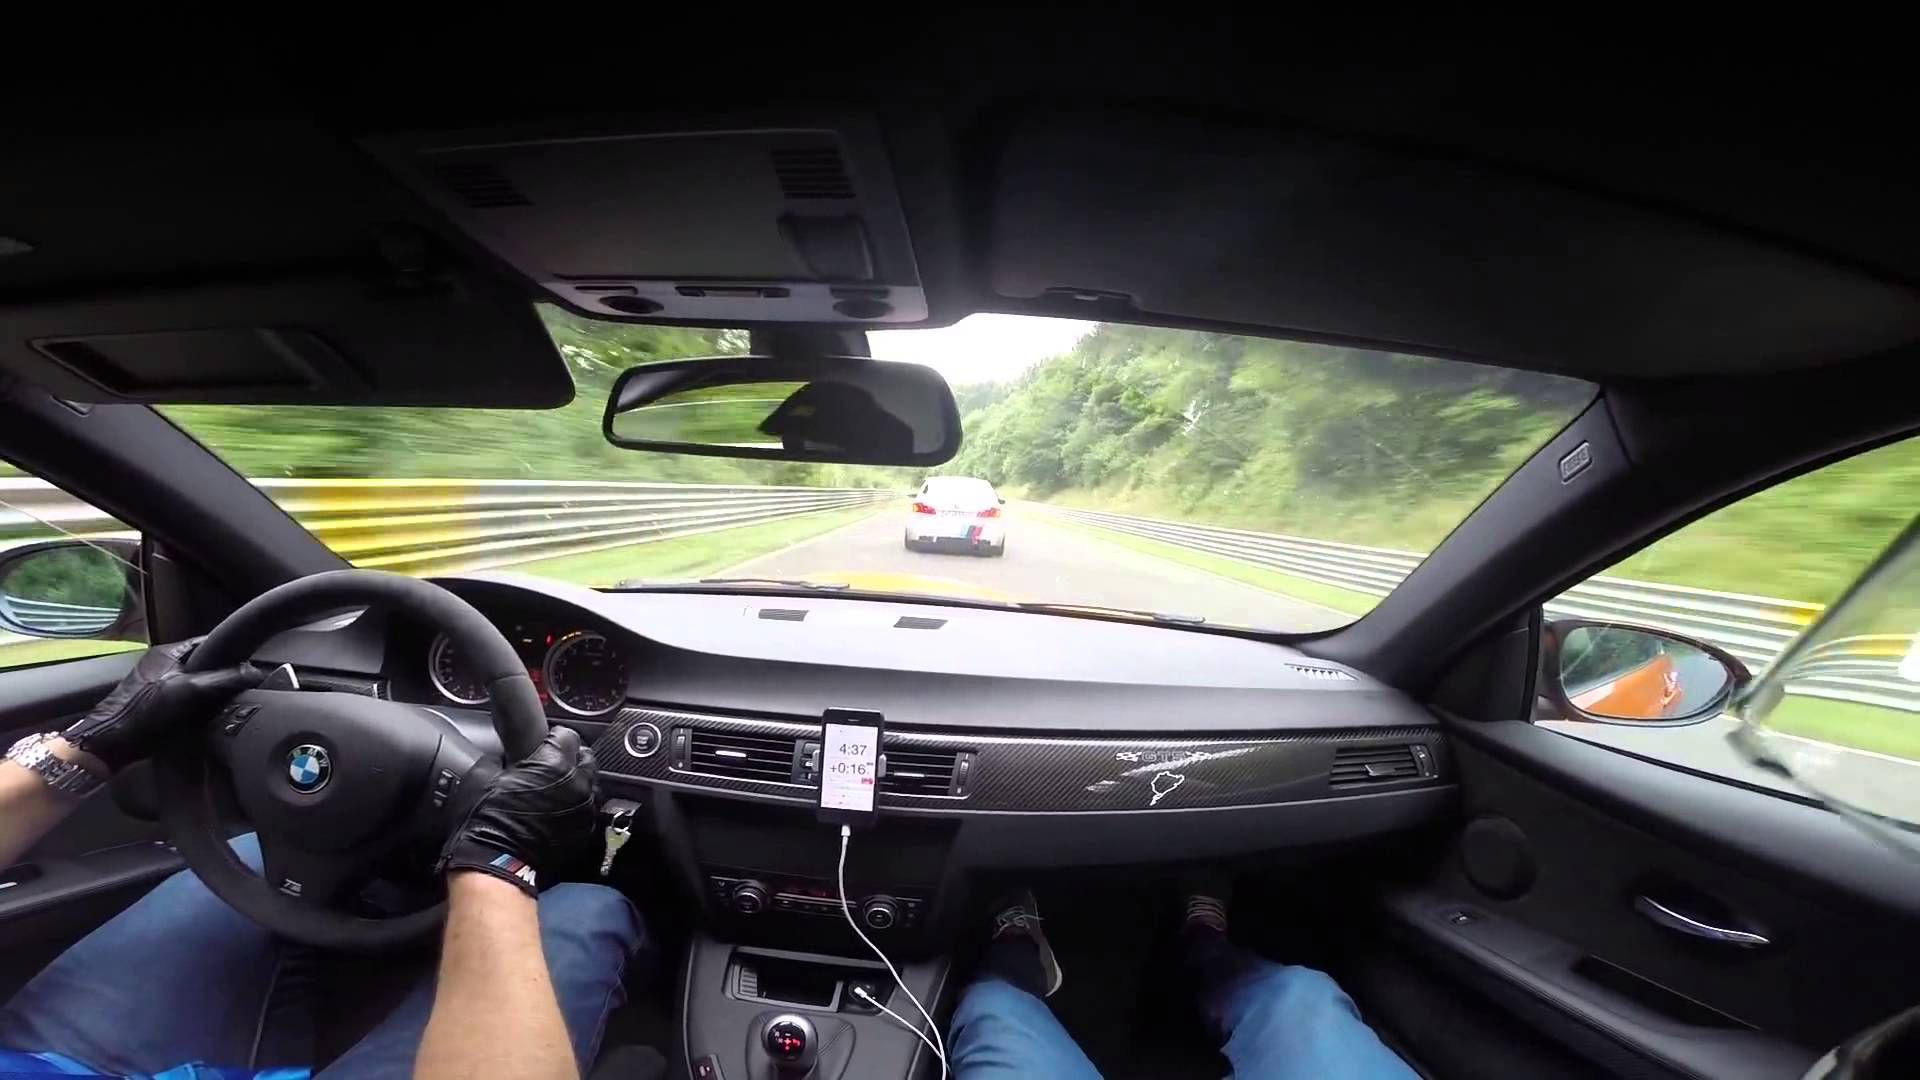 BMW M3 GTS VS BMW M5 F10 Ring Taxi Nürburgring Nordschleife with